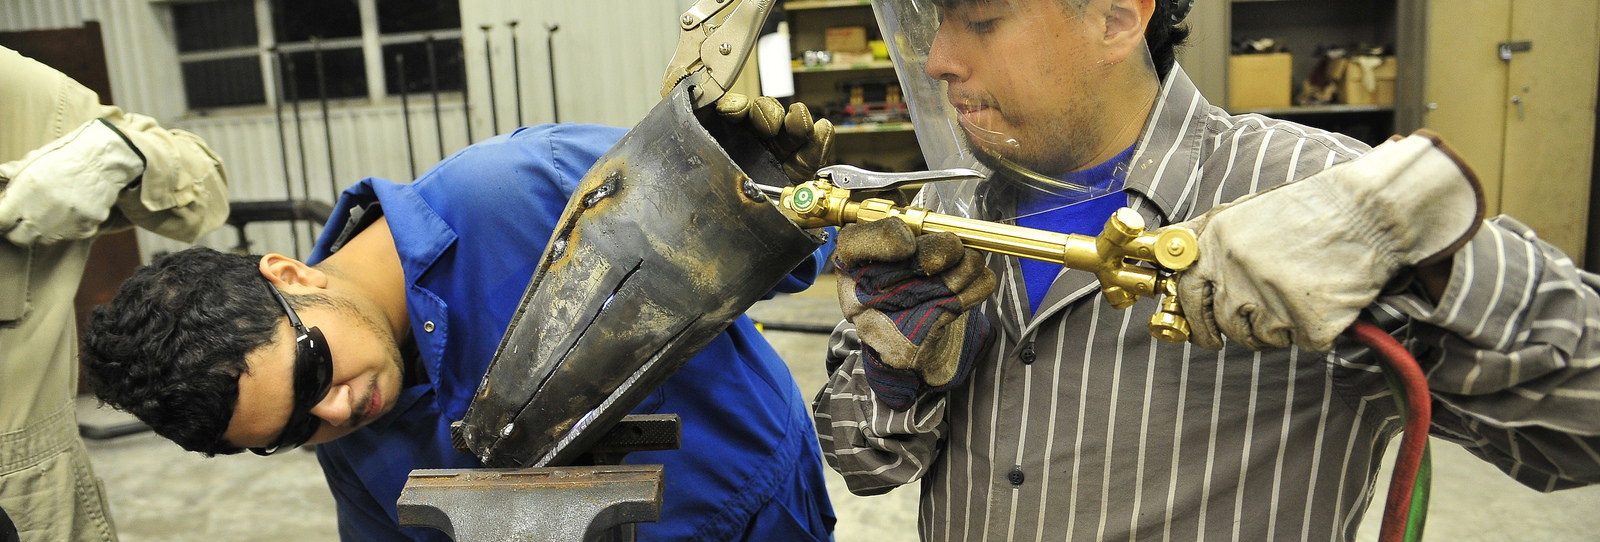 Nccer Certified Courses Available In Pipefitting Welding And